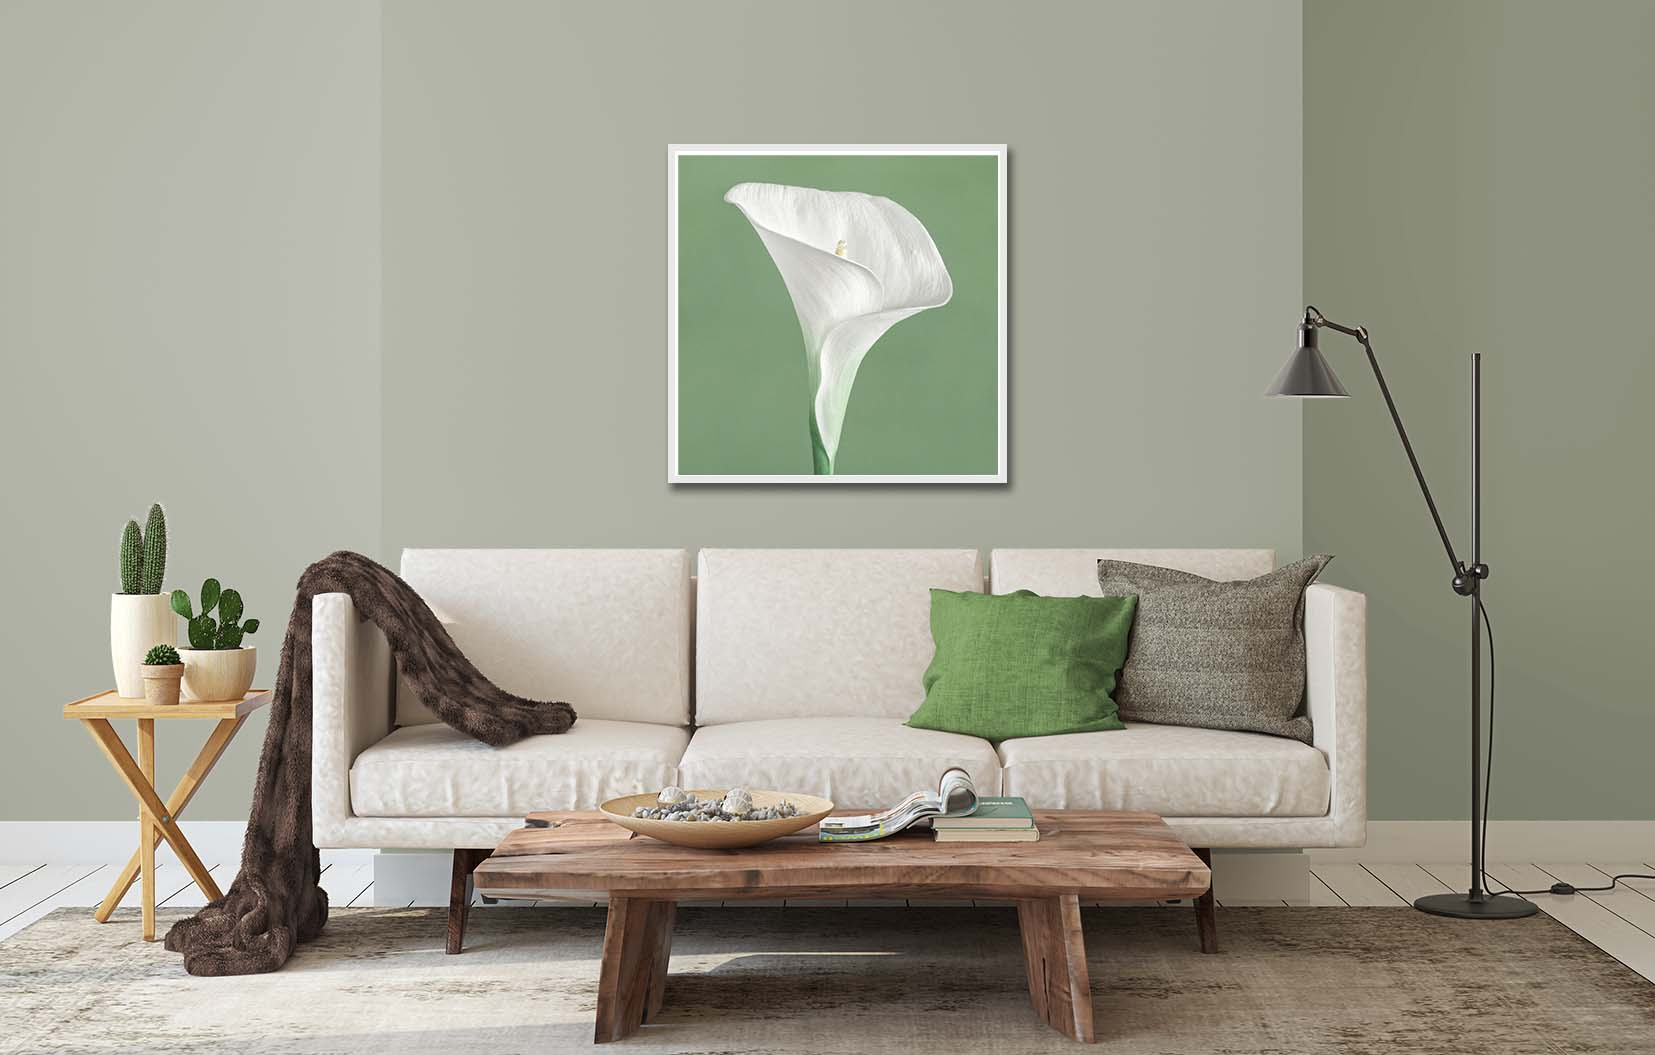 Calla Lilly on a green background. Limited edition print by fine art photographer Paul Coghlin. 32x32 inch print shown in a living room setting.